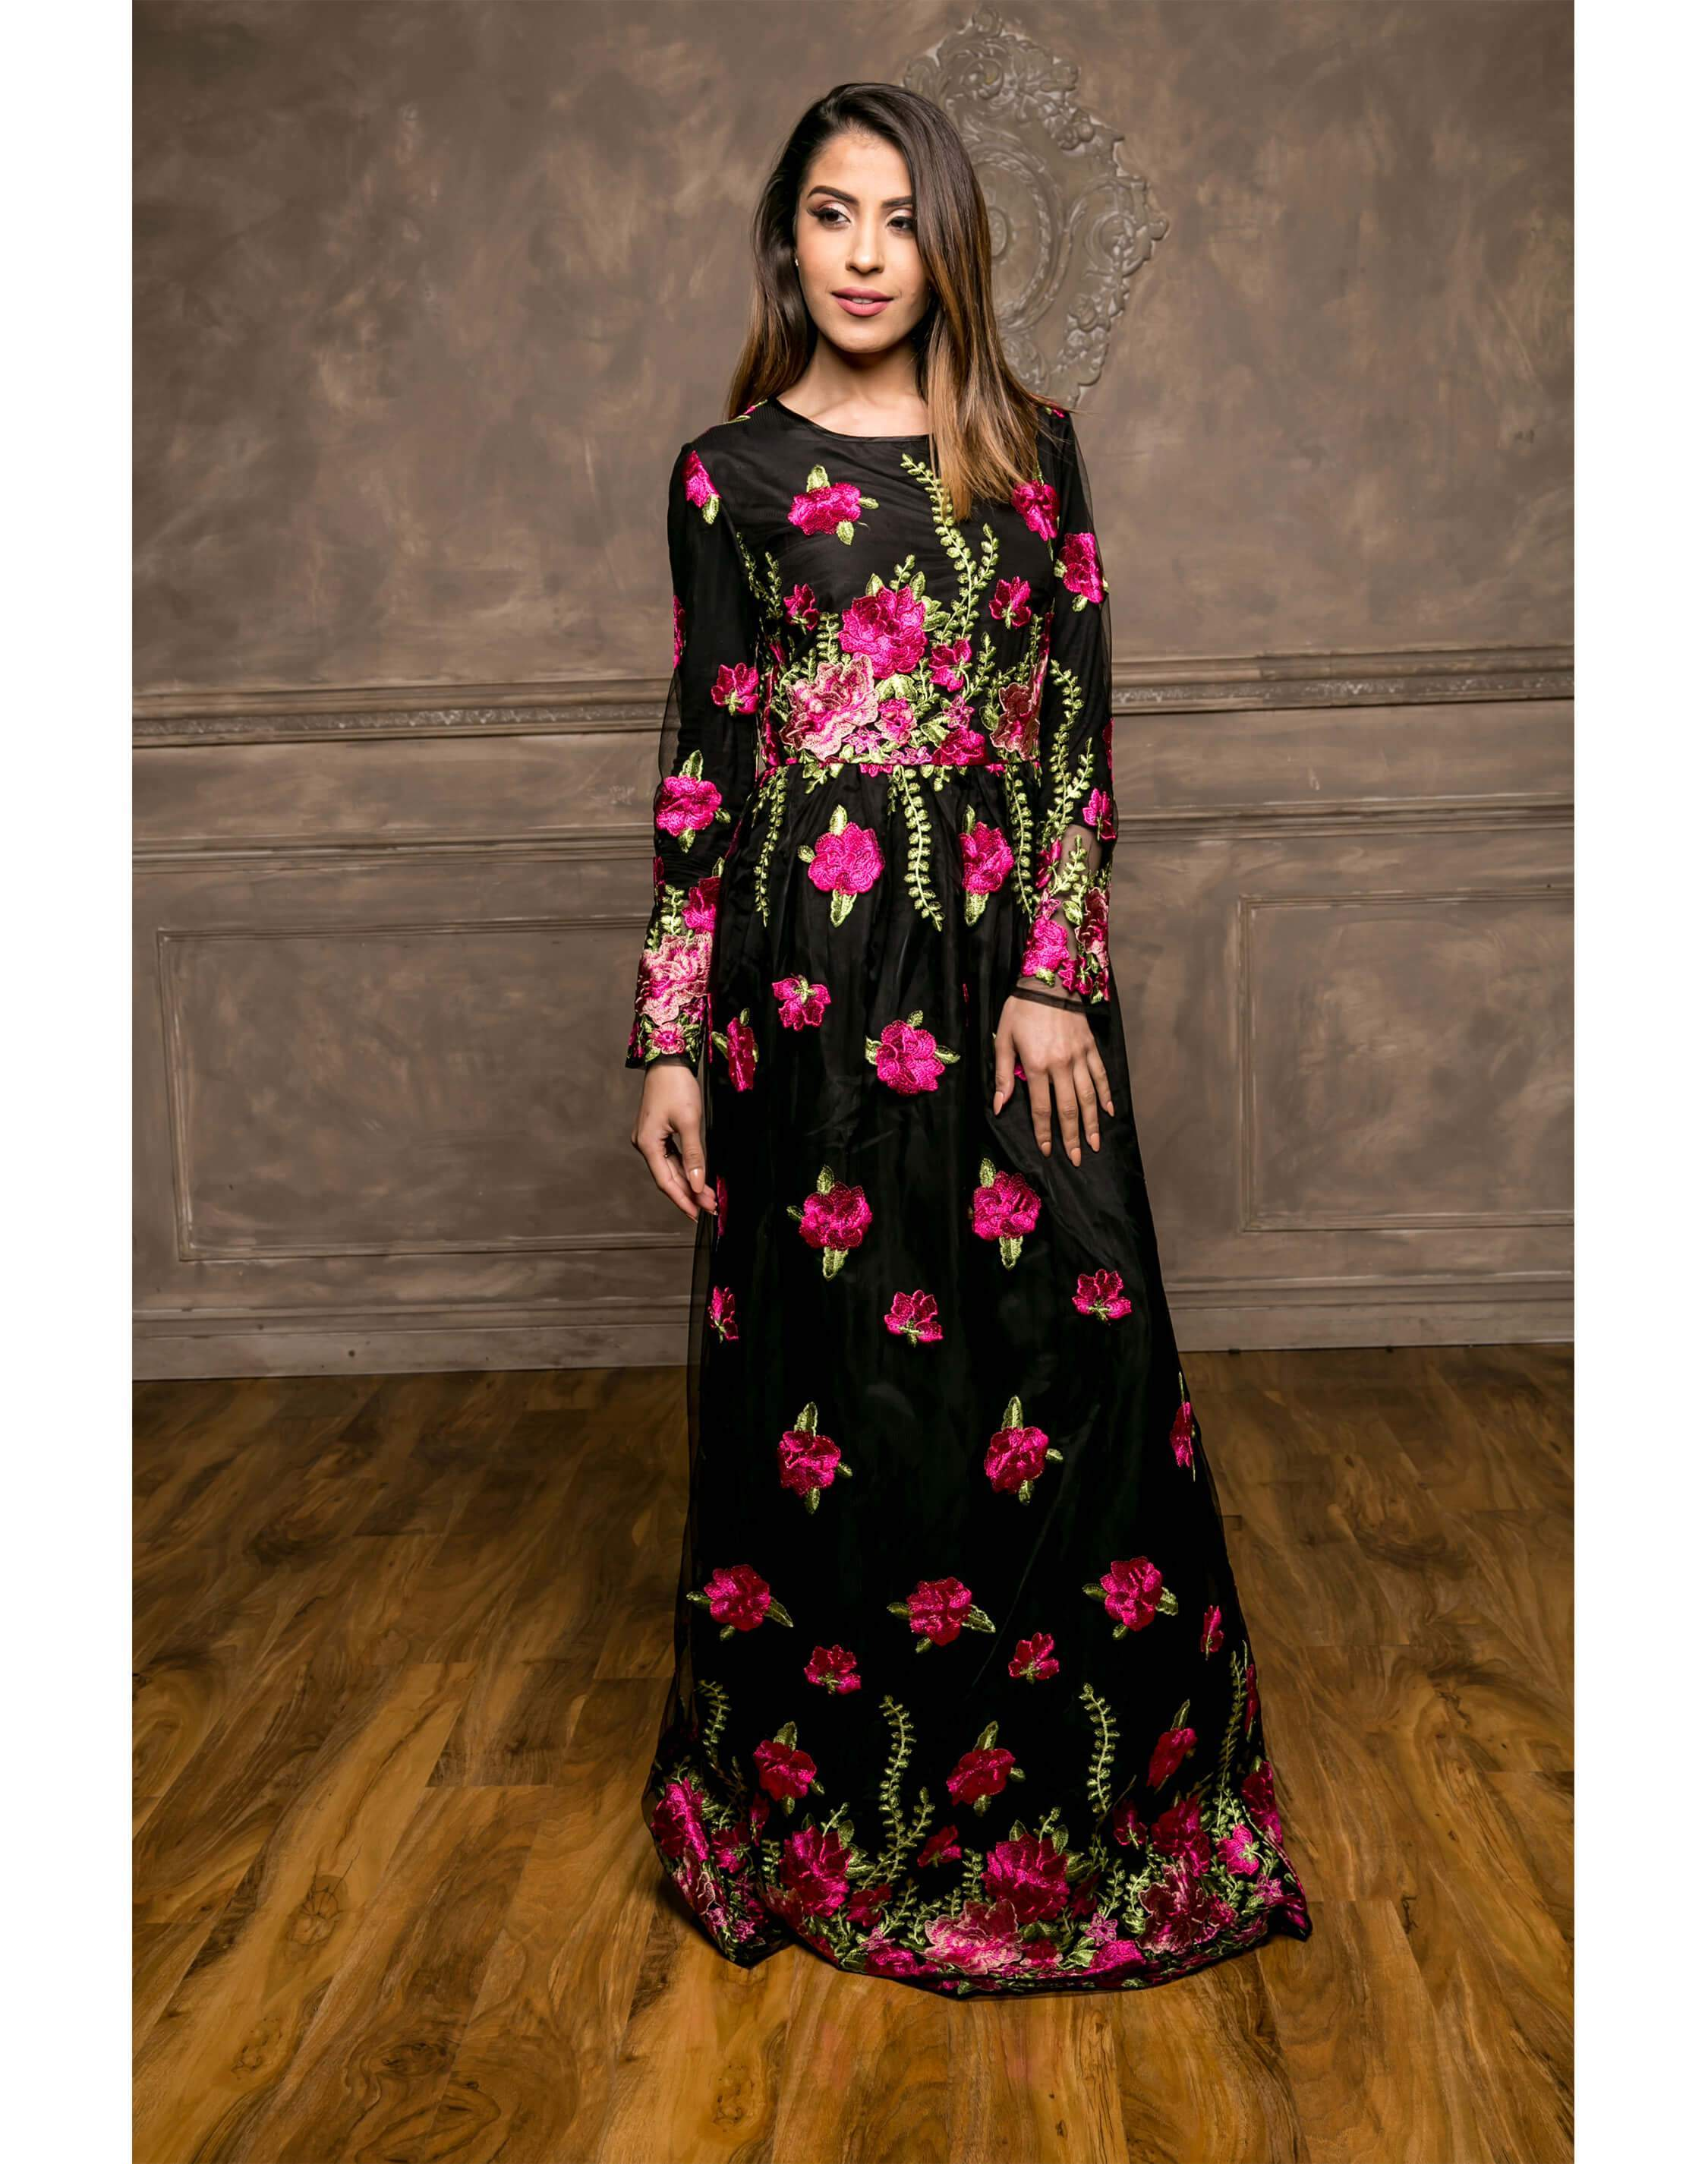 ... Pink Floral Embroidery Maxi Dress ...